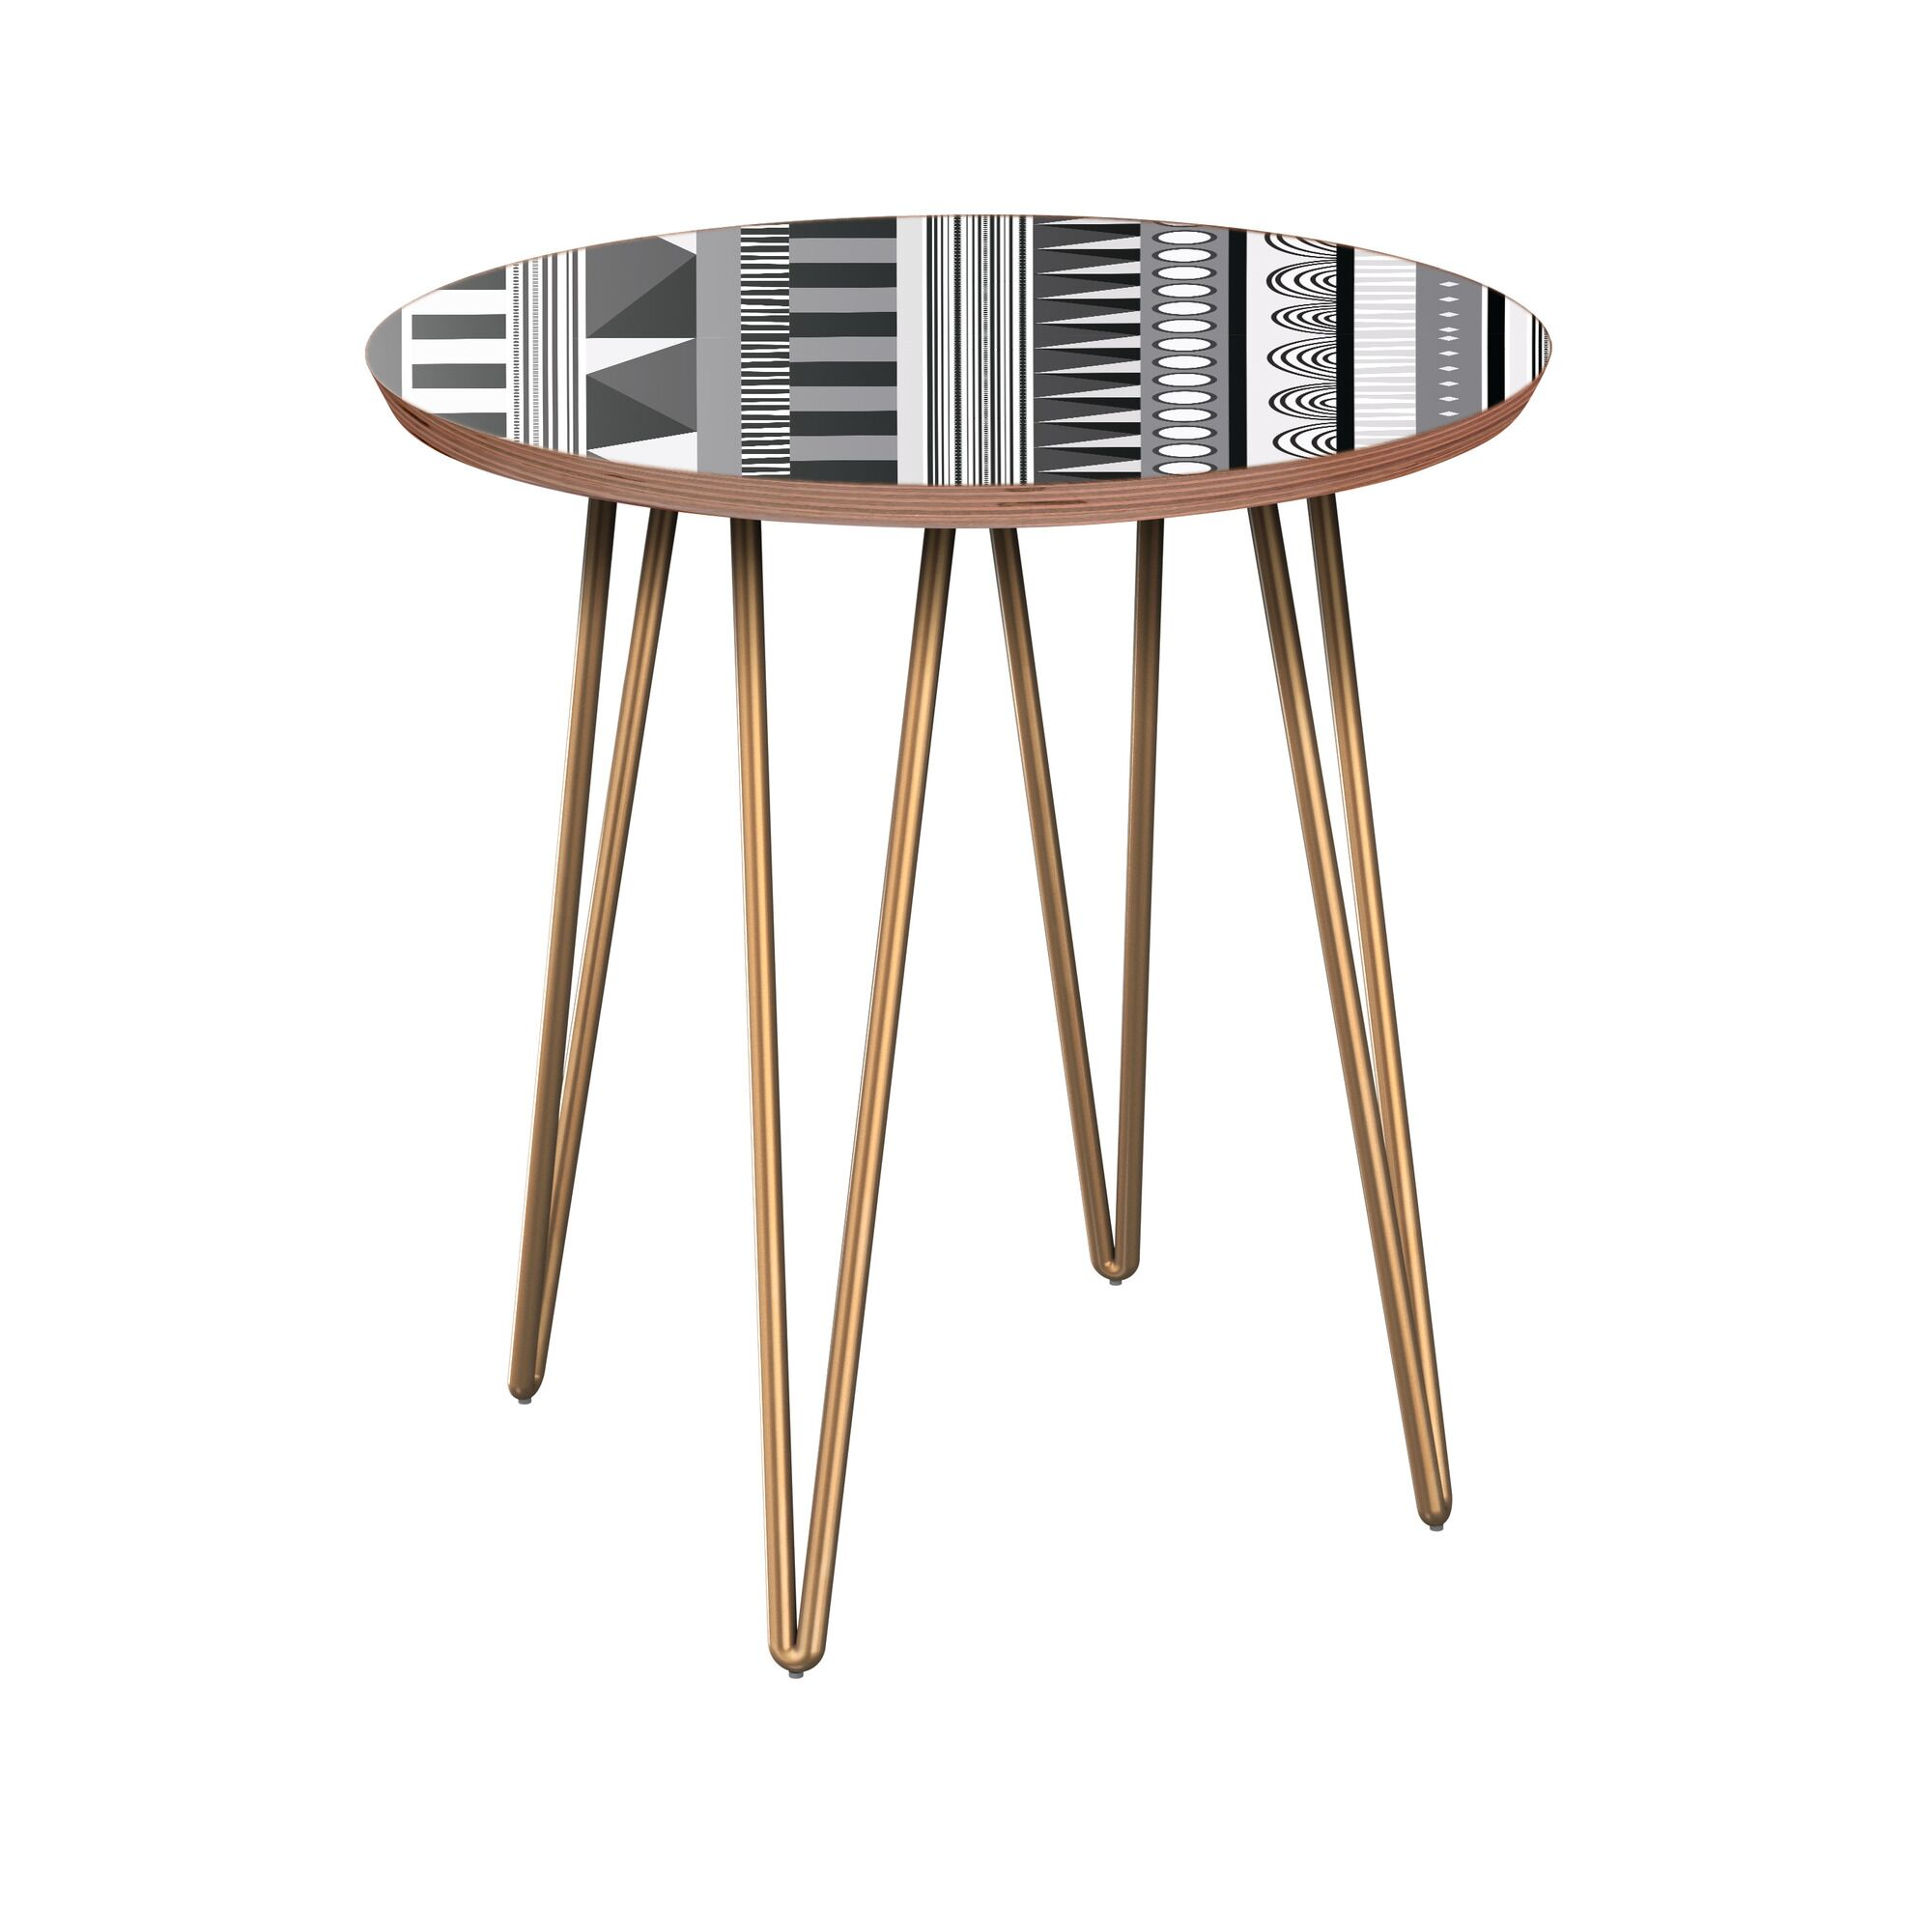 Hoopes End Table Table Base Color: Brass, Table Top Color: Walnut